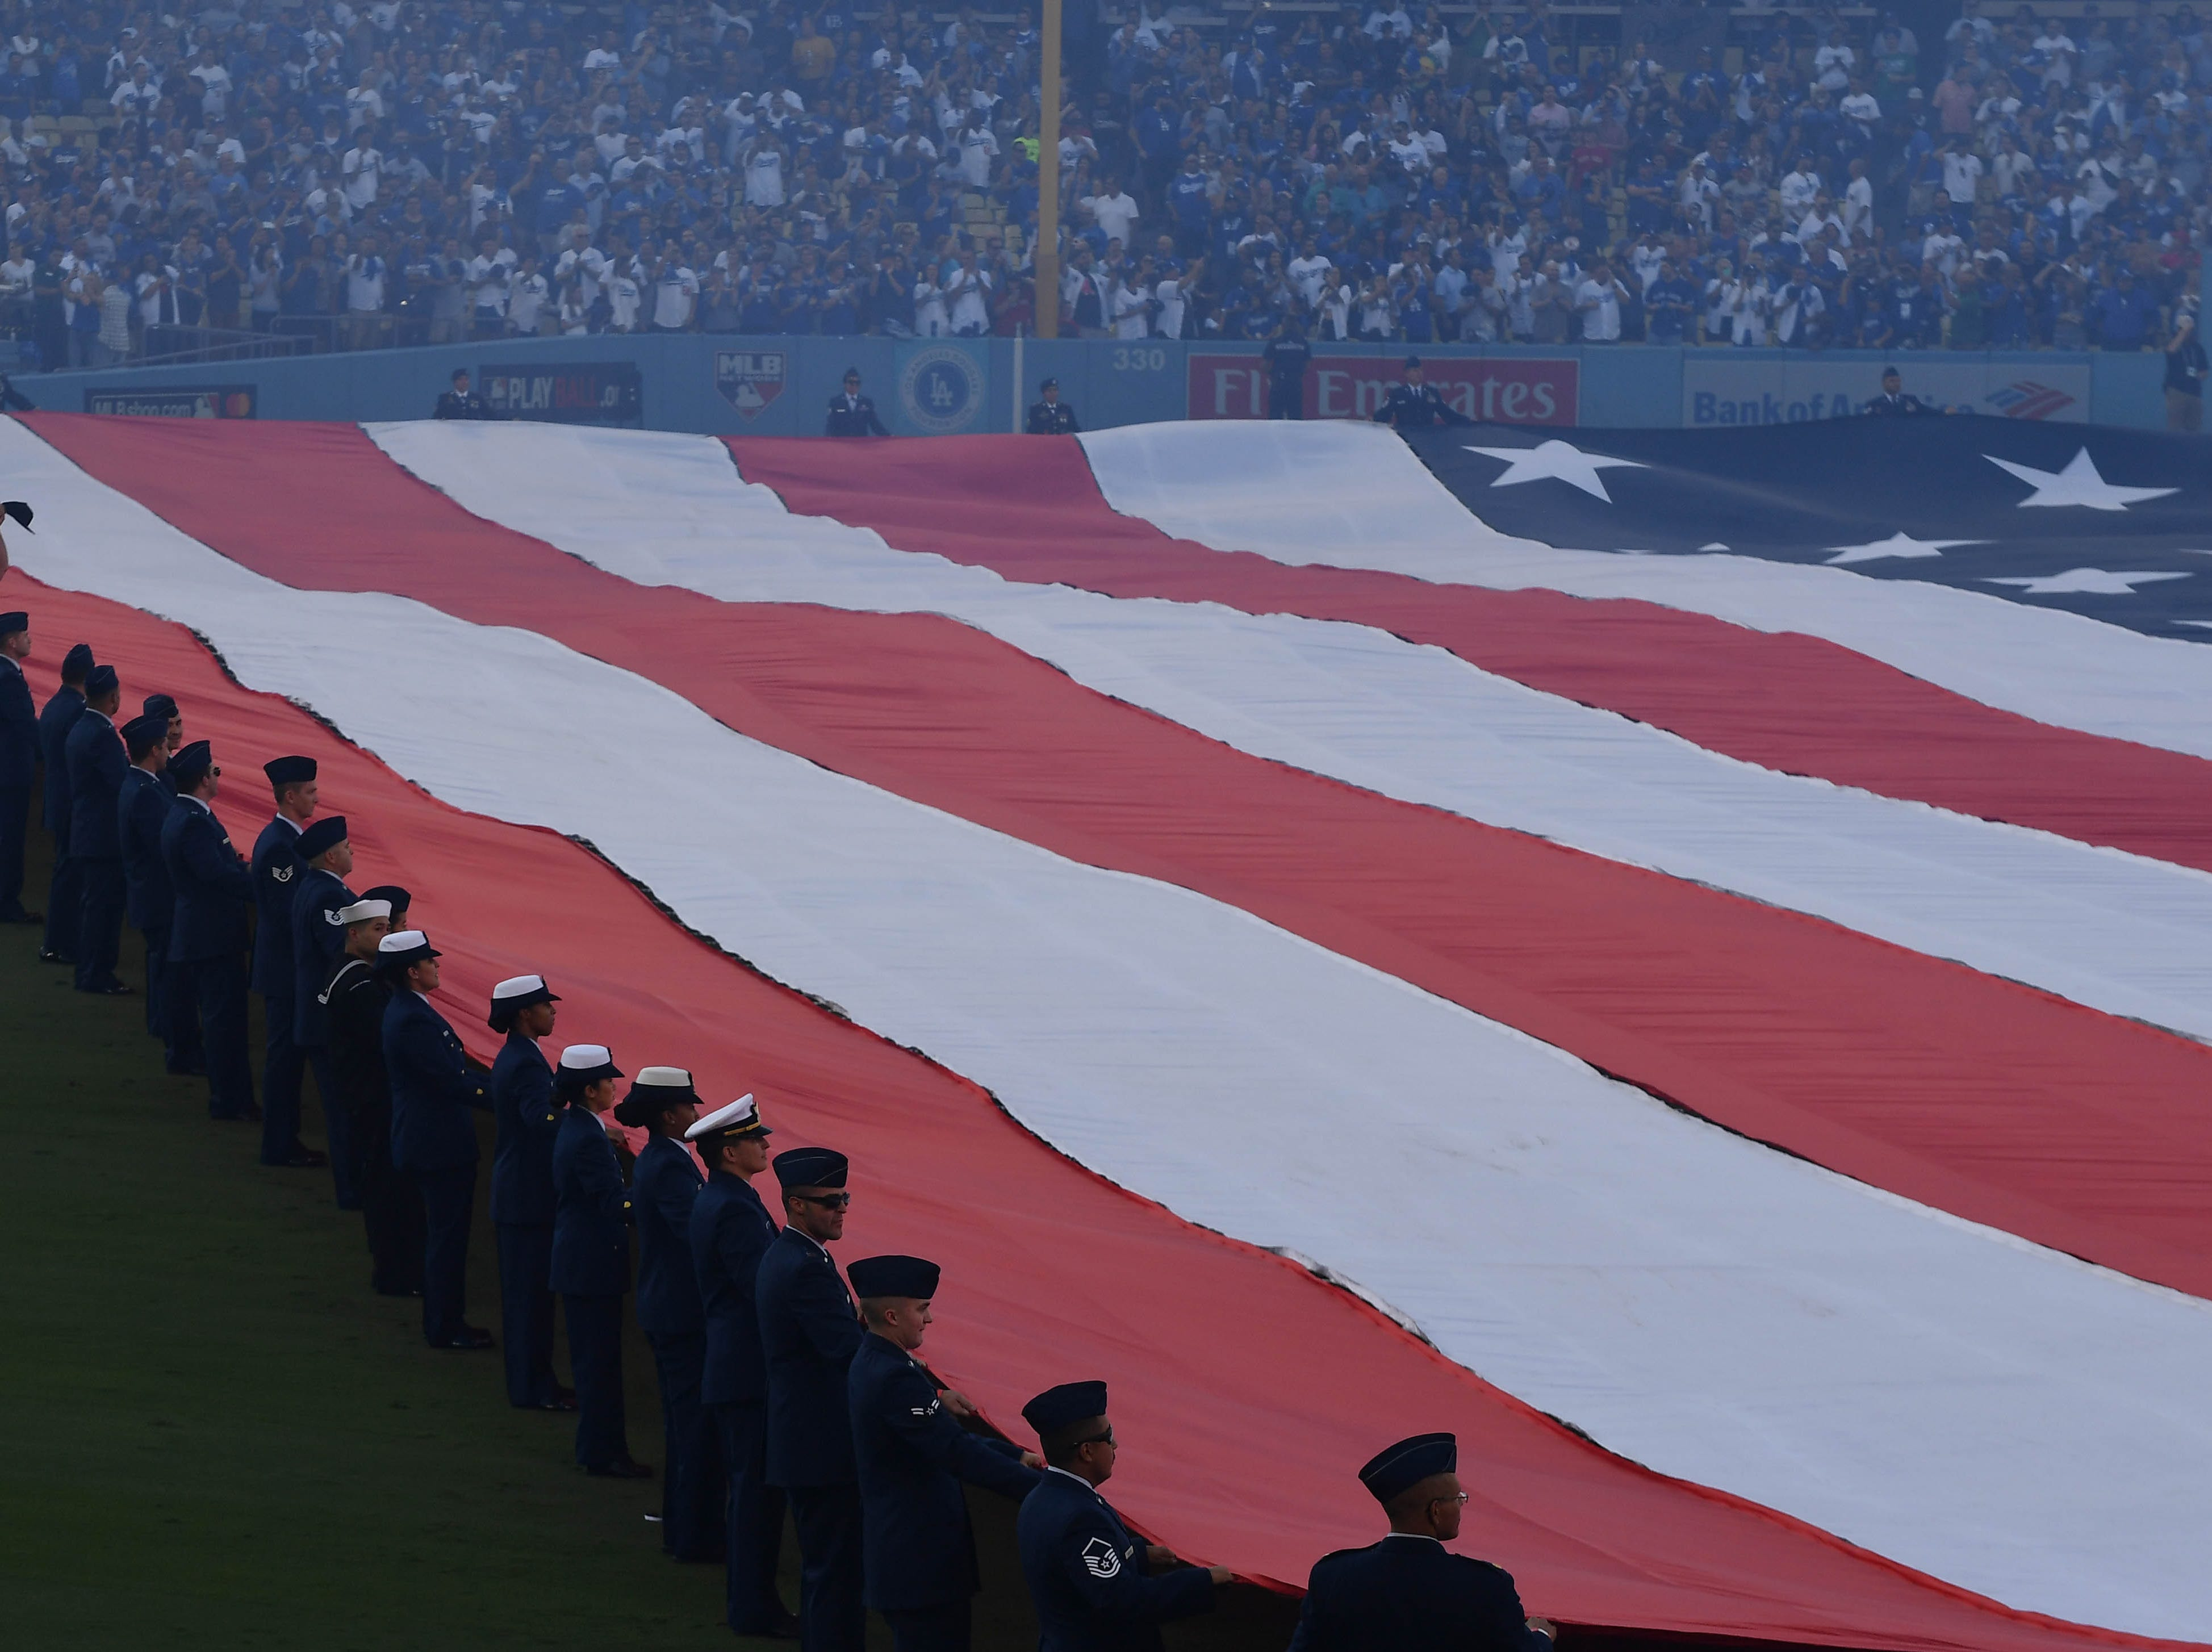 Game 3 at Dodgers Stadium: A view during the national anthem.